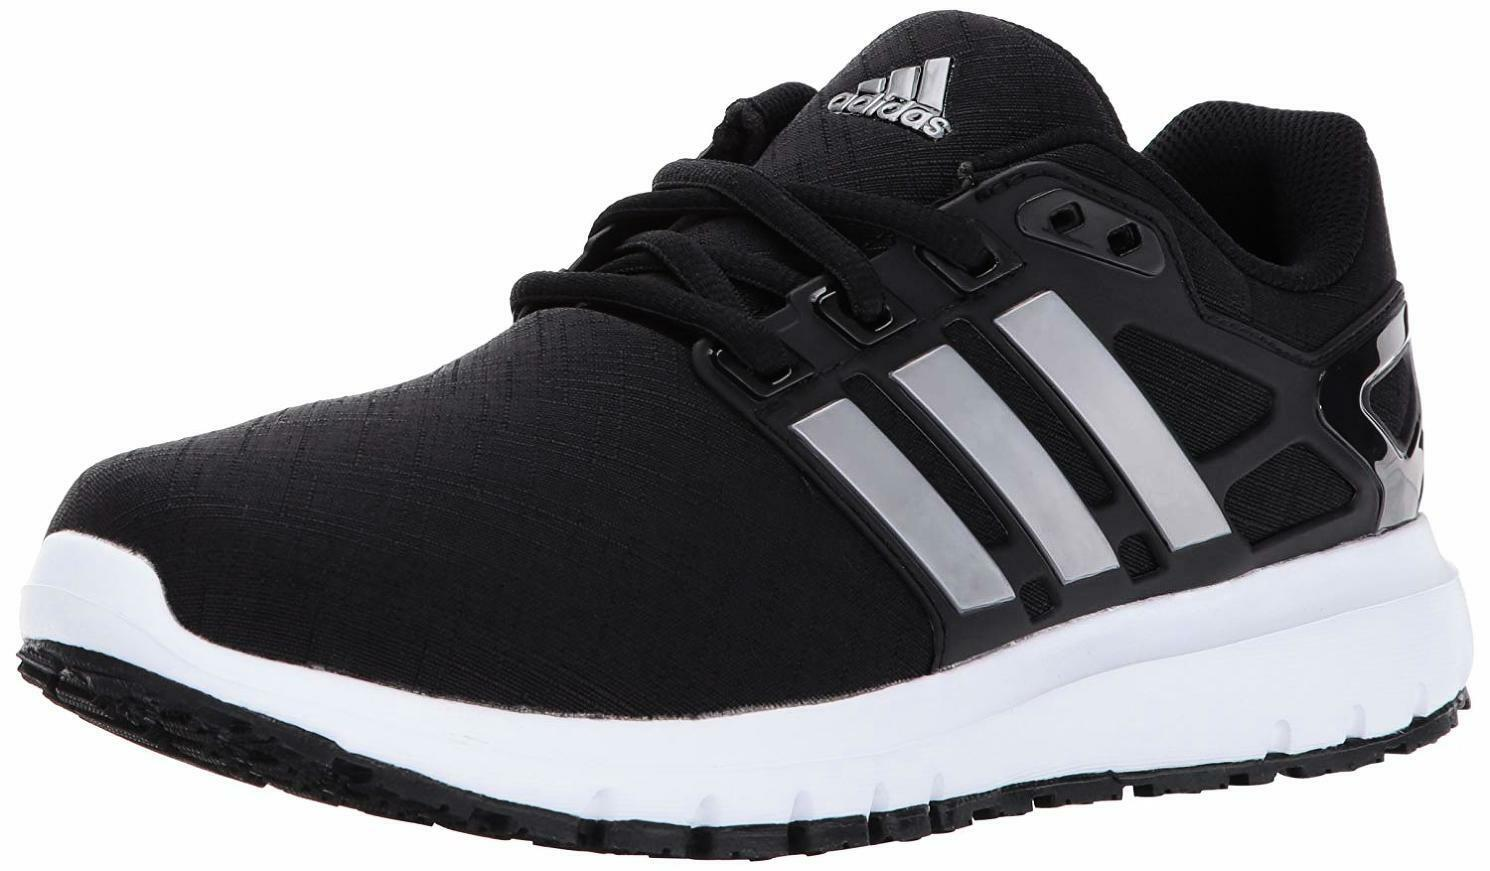 Adidas Women's Energy Cloud w Running shoes - Choose SZ color